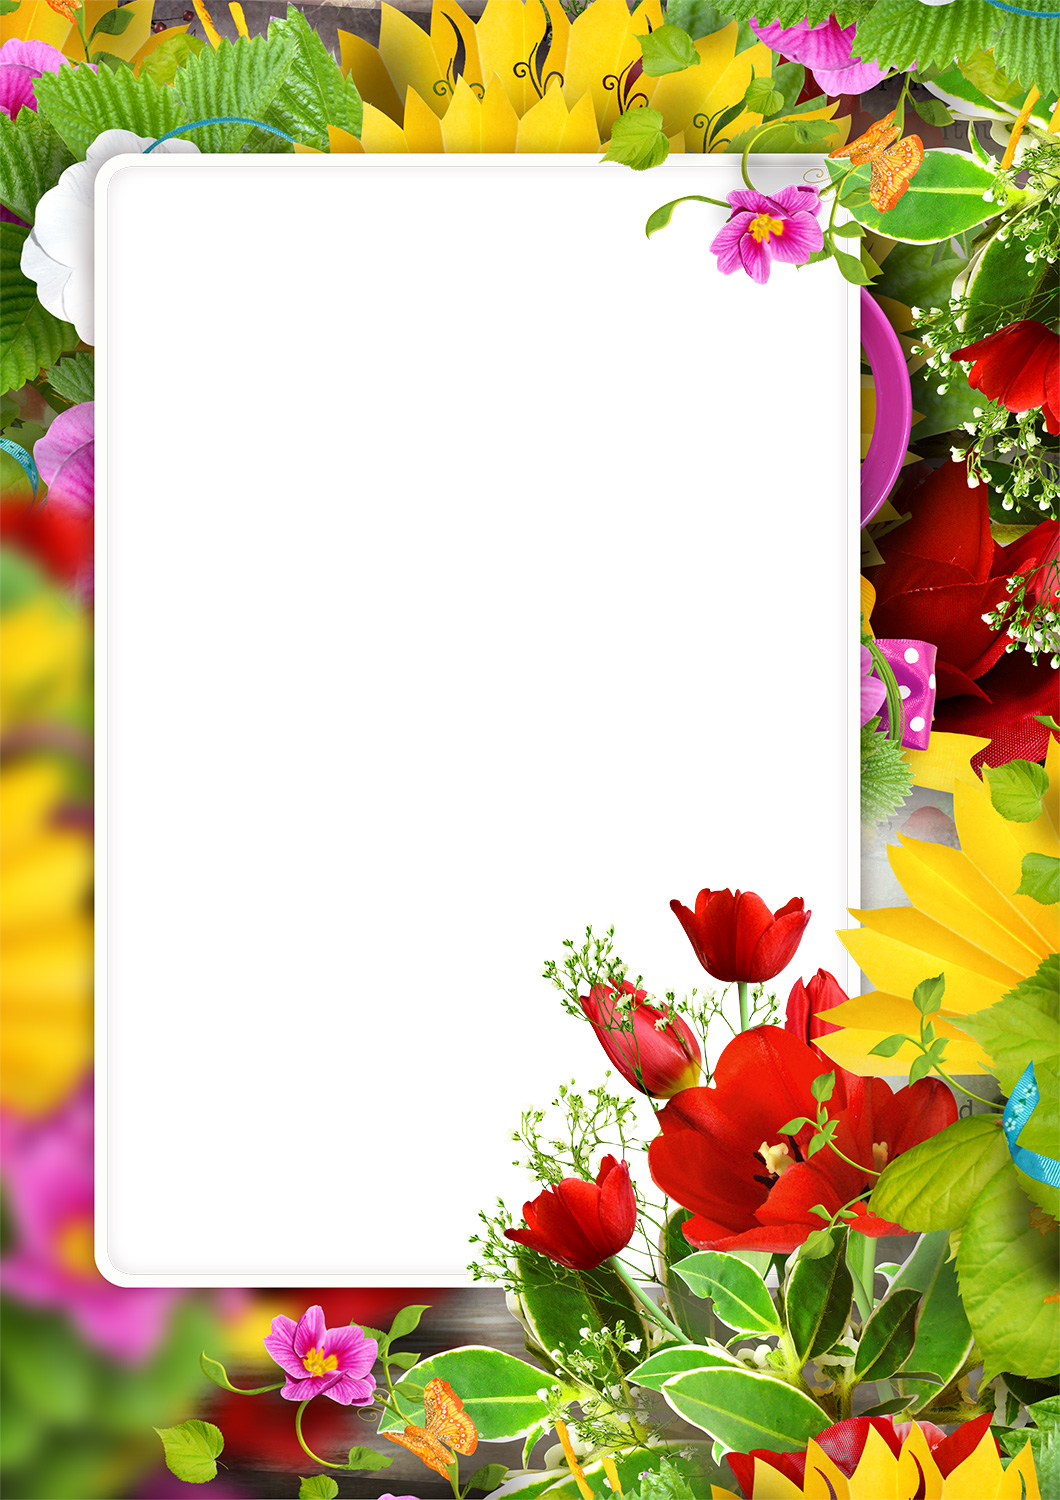 Flowers Photo Frames Loonapix Roses Tulips Poppies 60 Frames